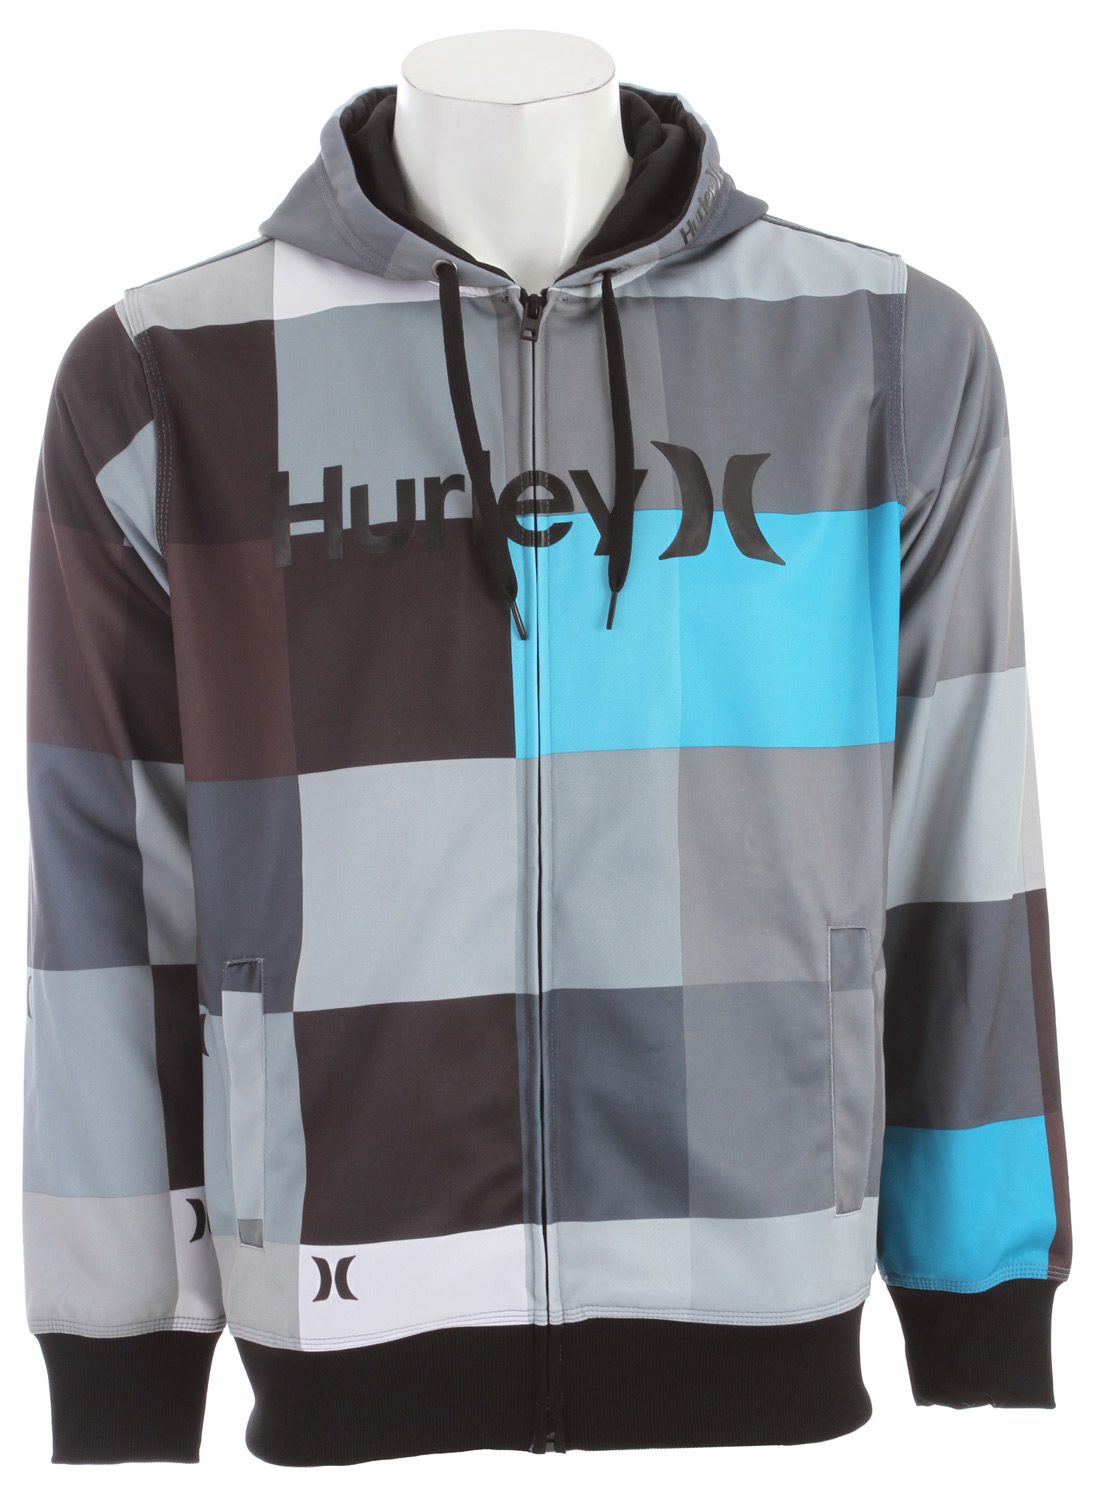 Surf Key Features of the Hurley Multi Zip Hoodie: Regular Fit -100 Poly tricot 300gm Sublimated hooded full zip with key boardshort prints of the season. One & Only high density logo on chest. - $48.95